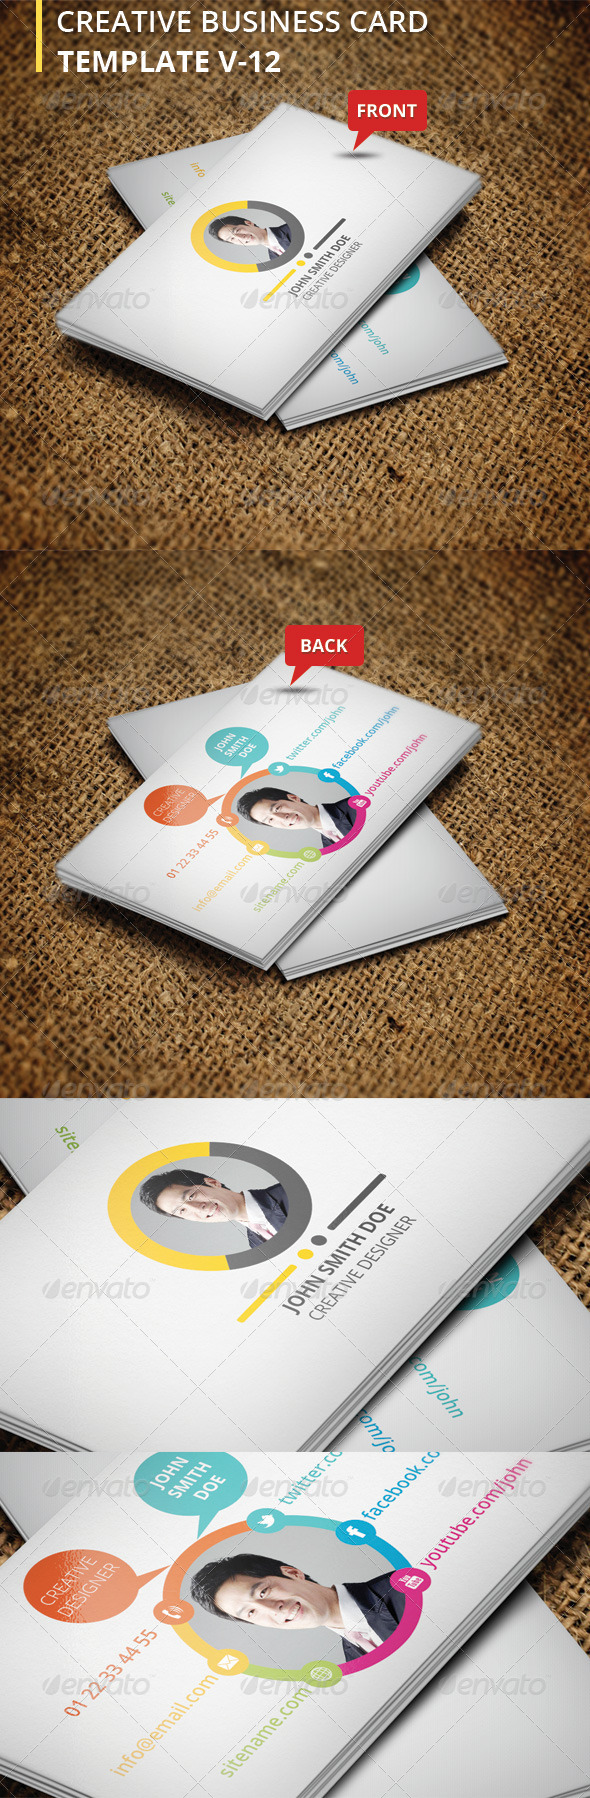 Creative Business Card V-12 - Corporate Business Cards